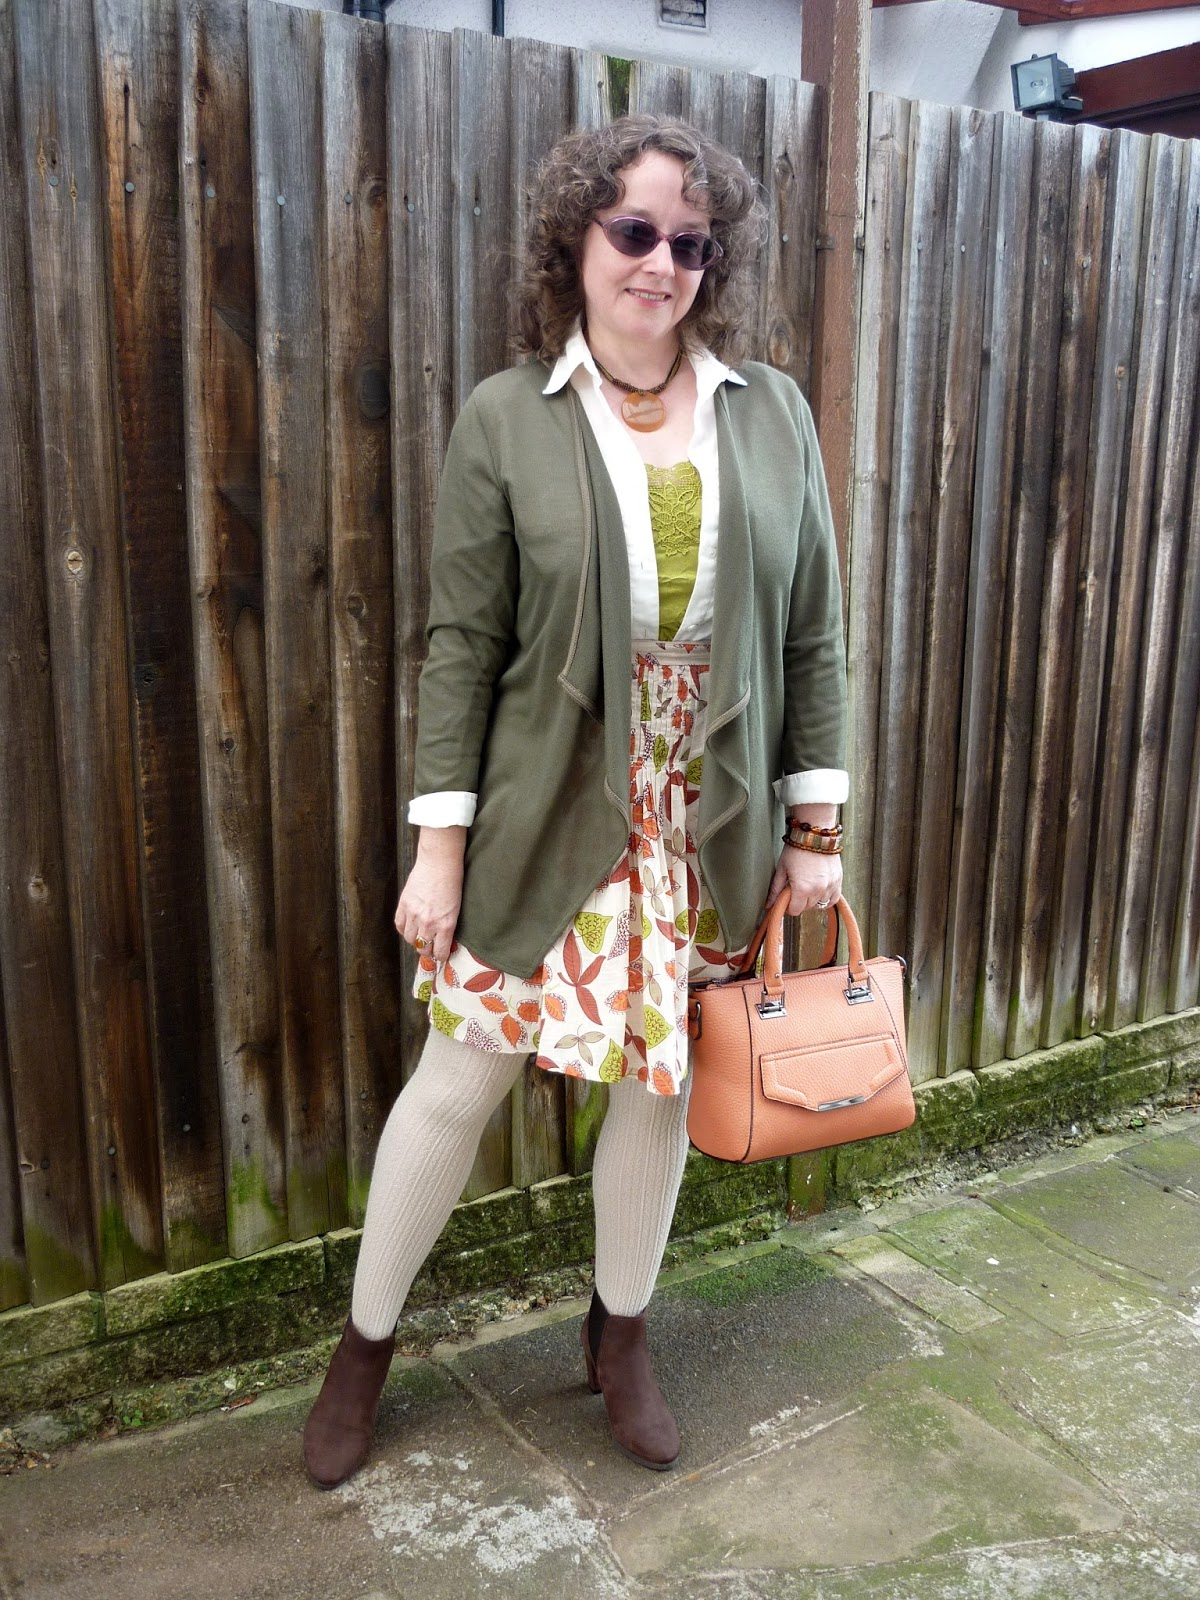 Olive Waterfall Cardigan, Pistachio Cami, Shirt, Pumpkin Bag, Leaf Patterned Skirt | Petite Silver Vixen